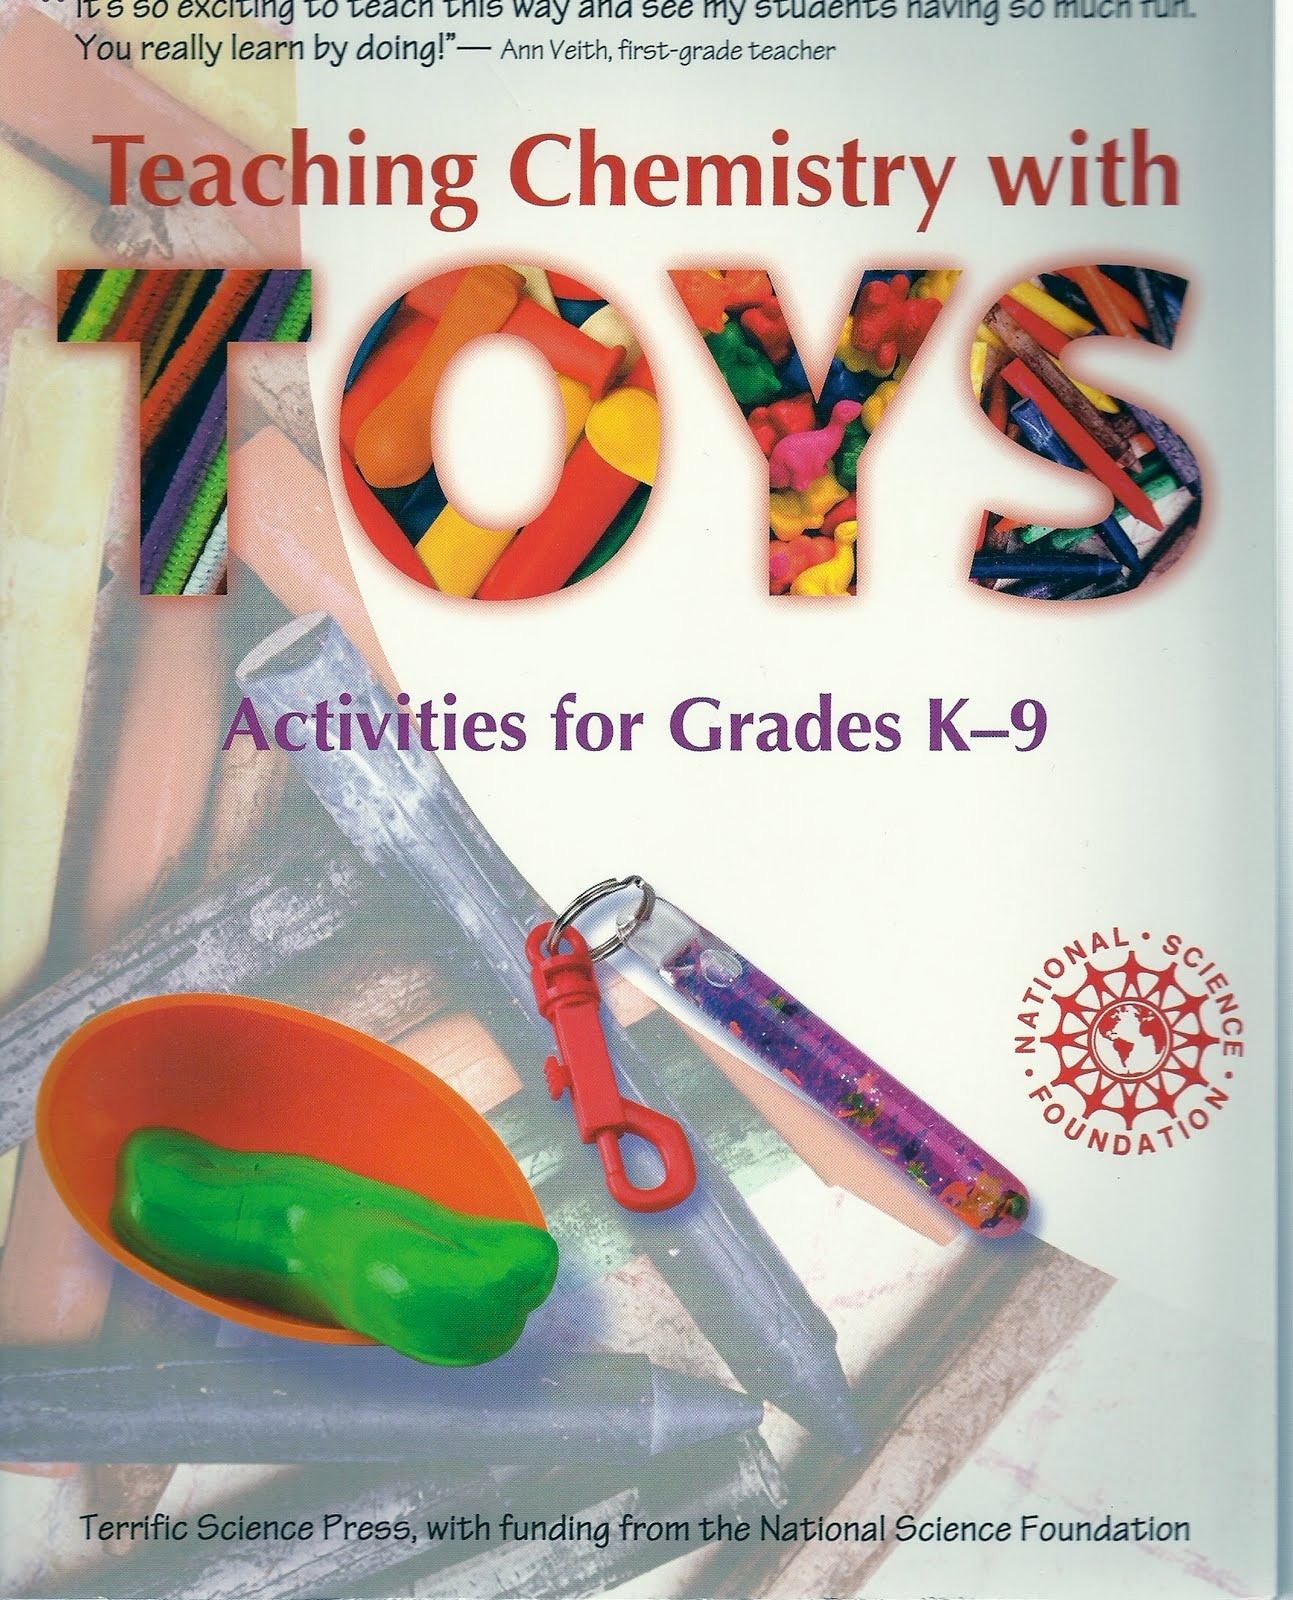 Teaching Chemistry With Toys also 2010 12 01 archive moreover Sertraline further News also Printthread. on chemistry archive 2010 december 03